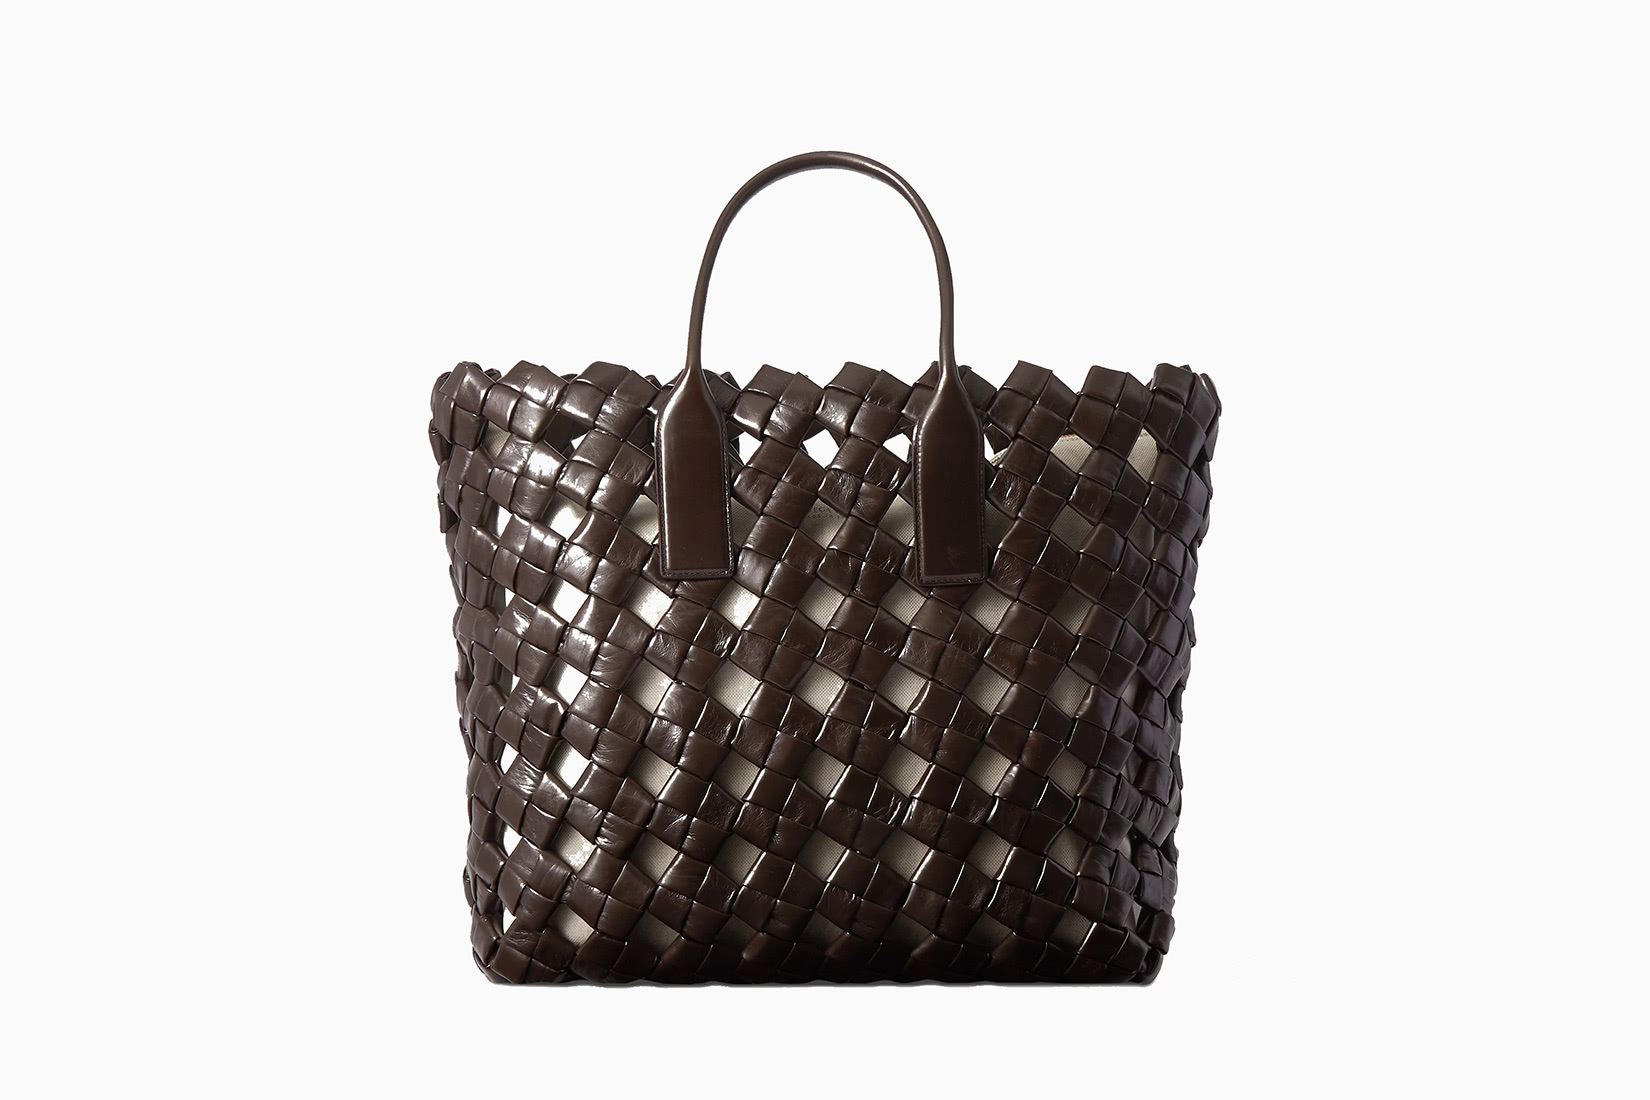 best travel tote bags women expensive leather bottega veneta review - Luxe Digital